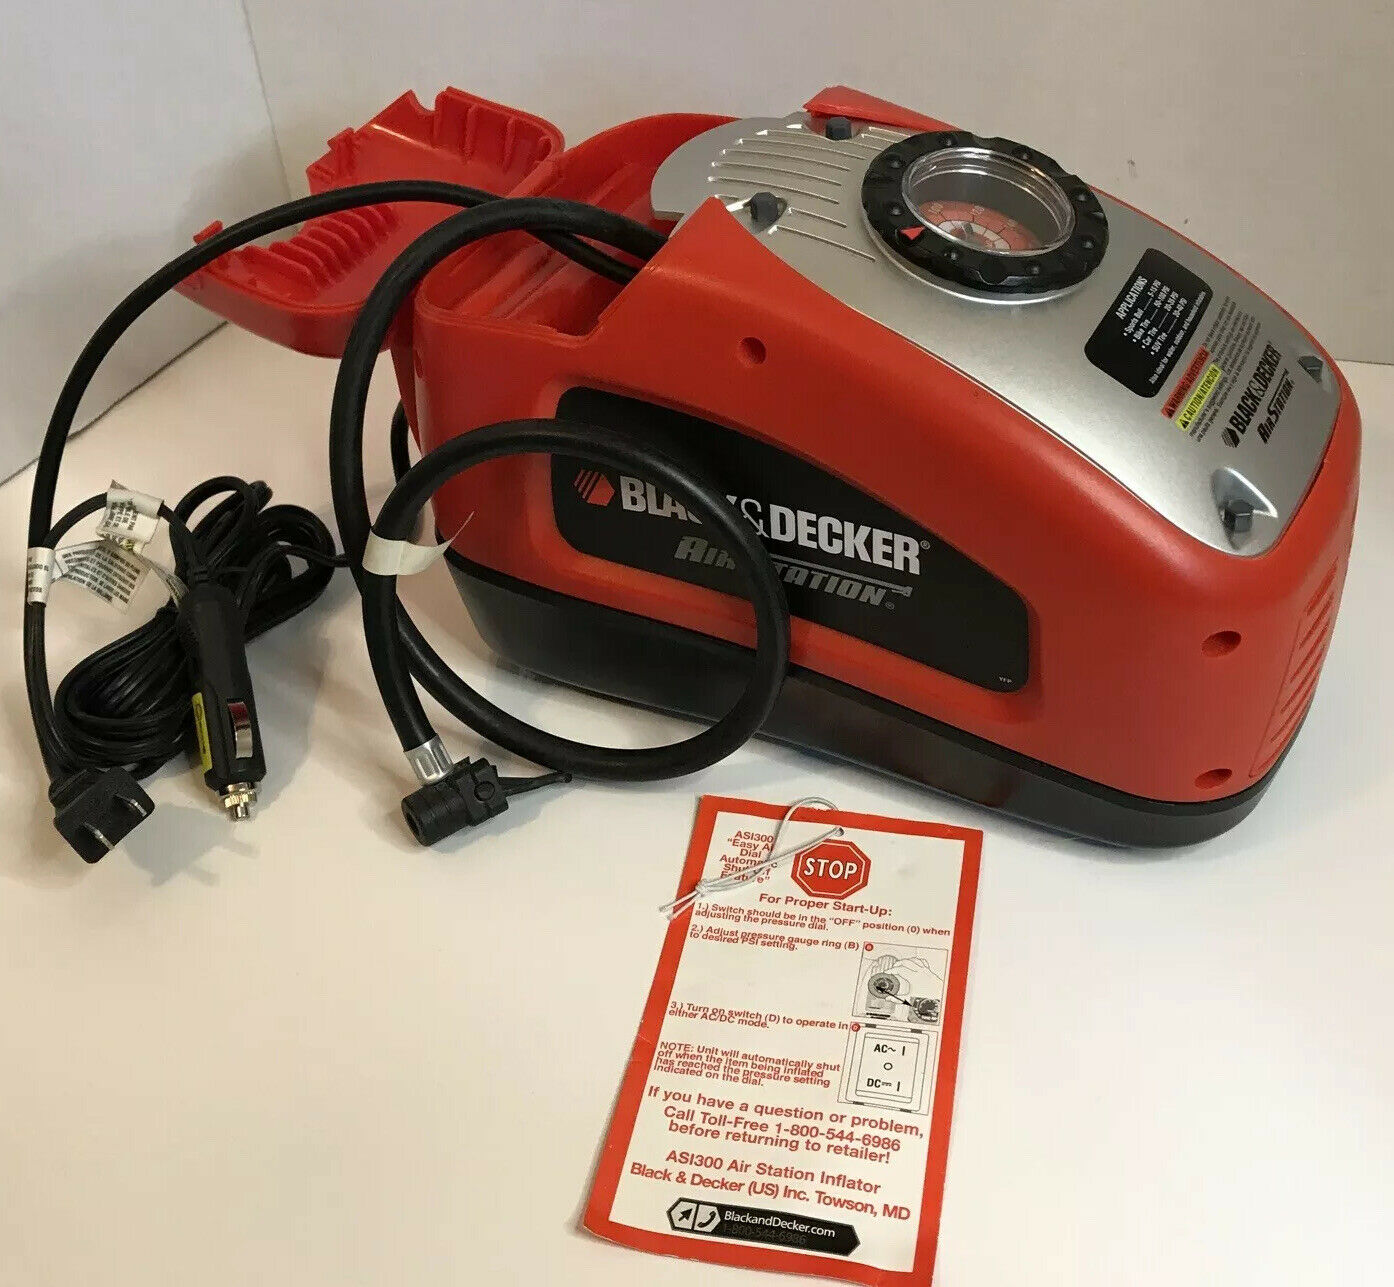 ASI300 midwest_pickers Black & Decker AS1300 Air Station 120 or 12 Volt Inflator Pump Auto Shut Off